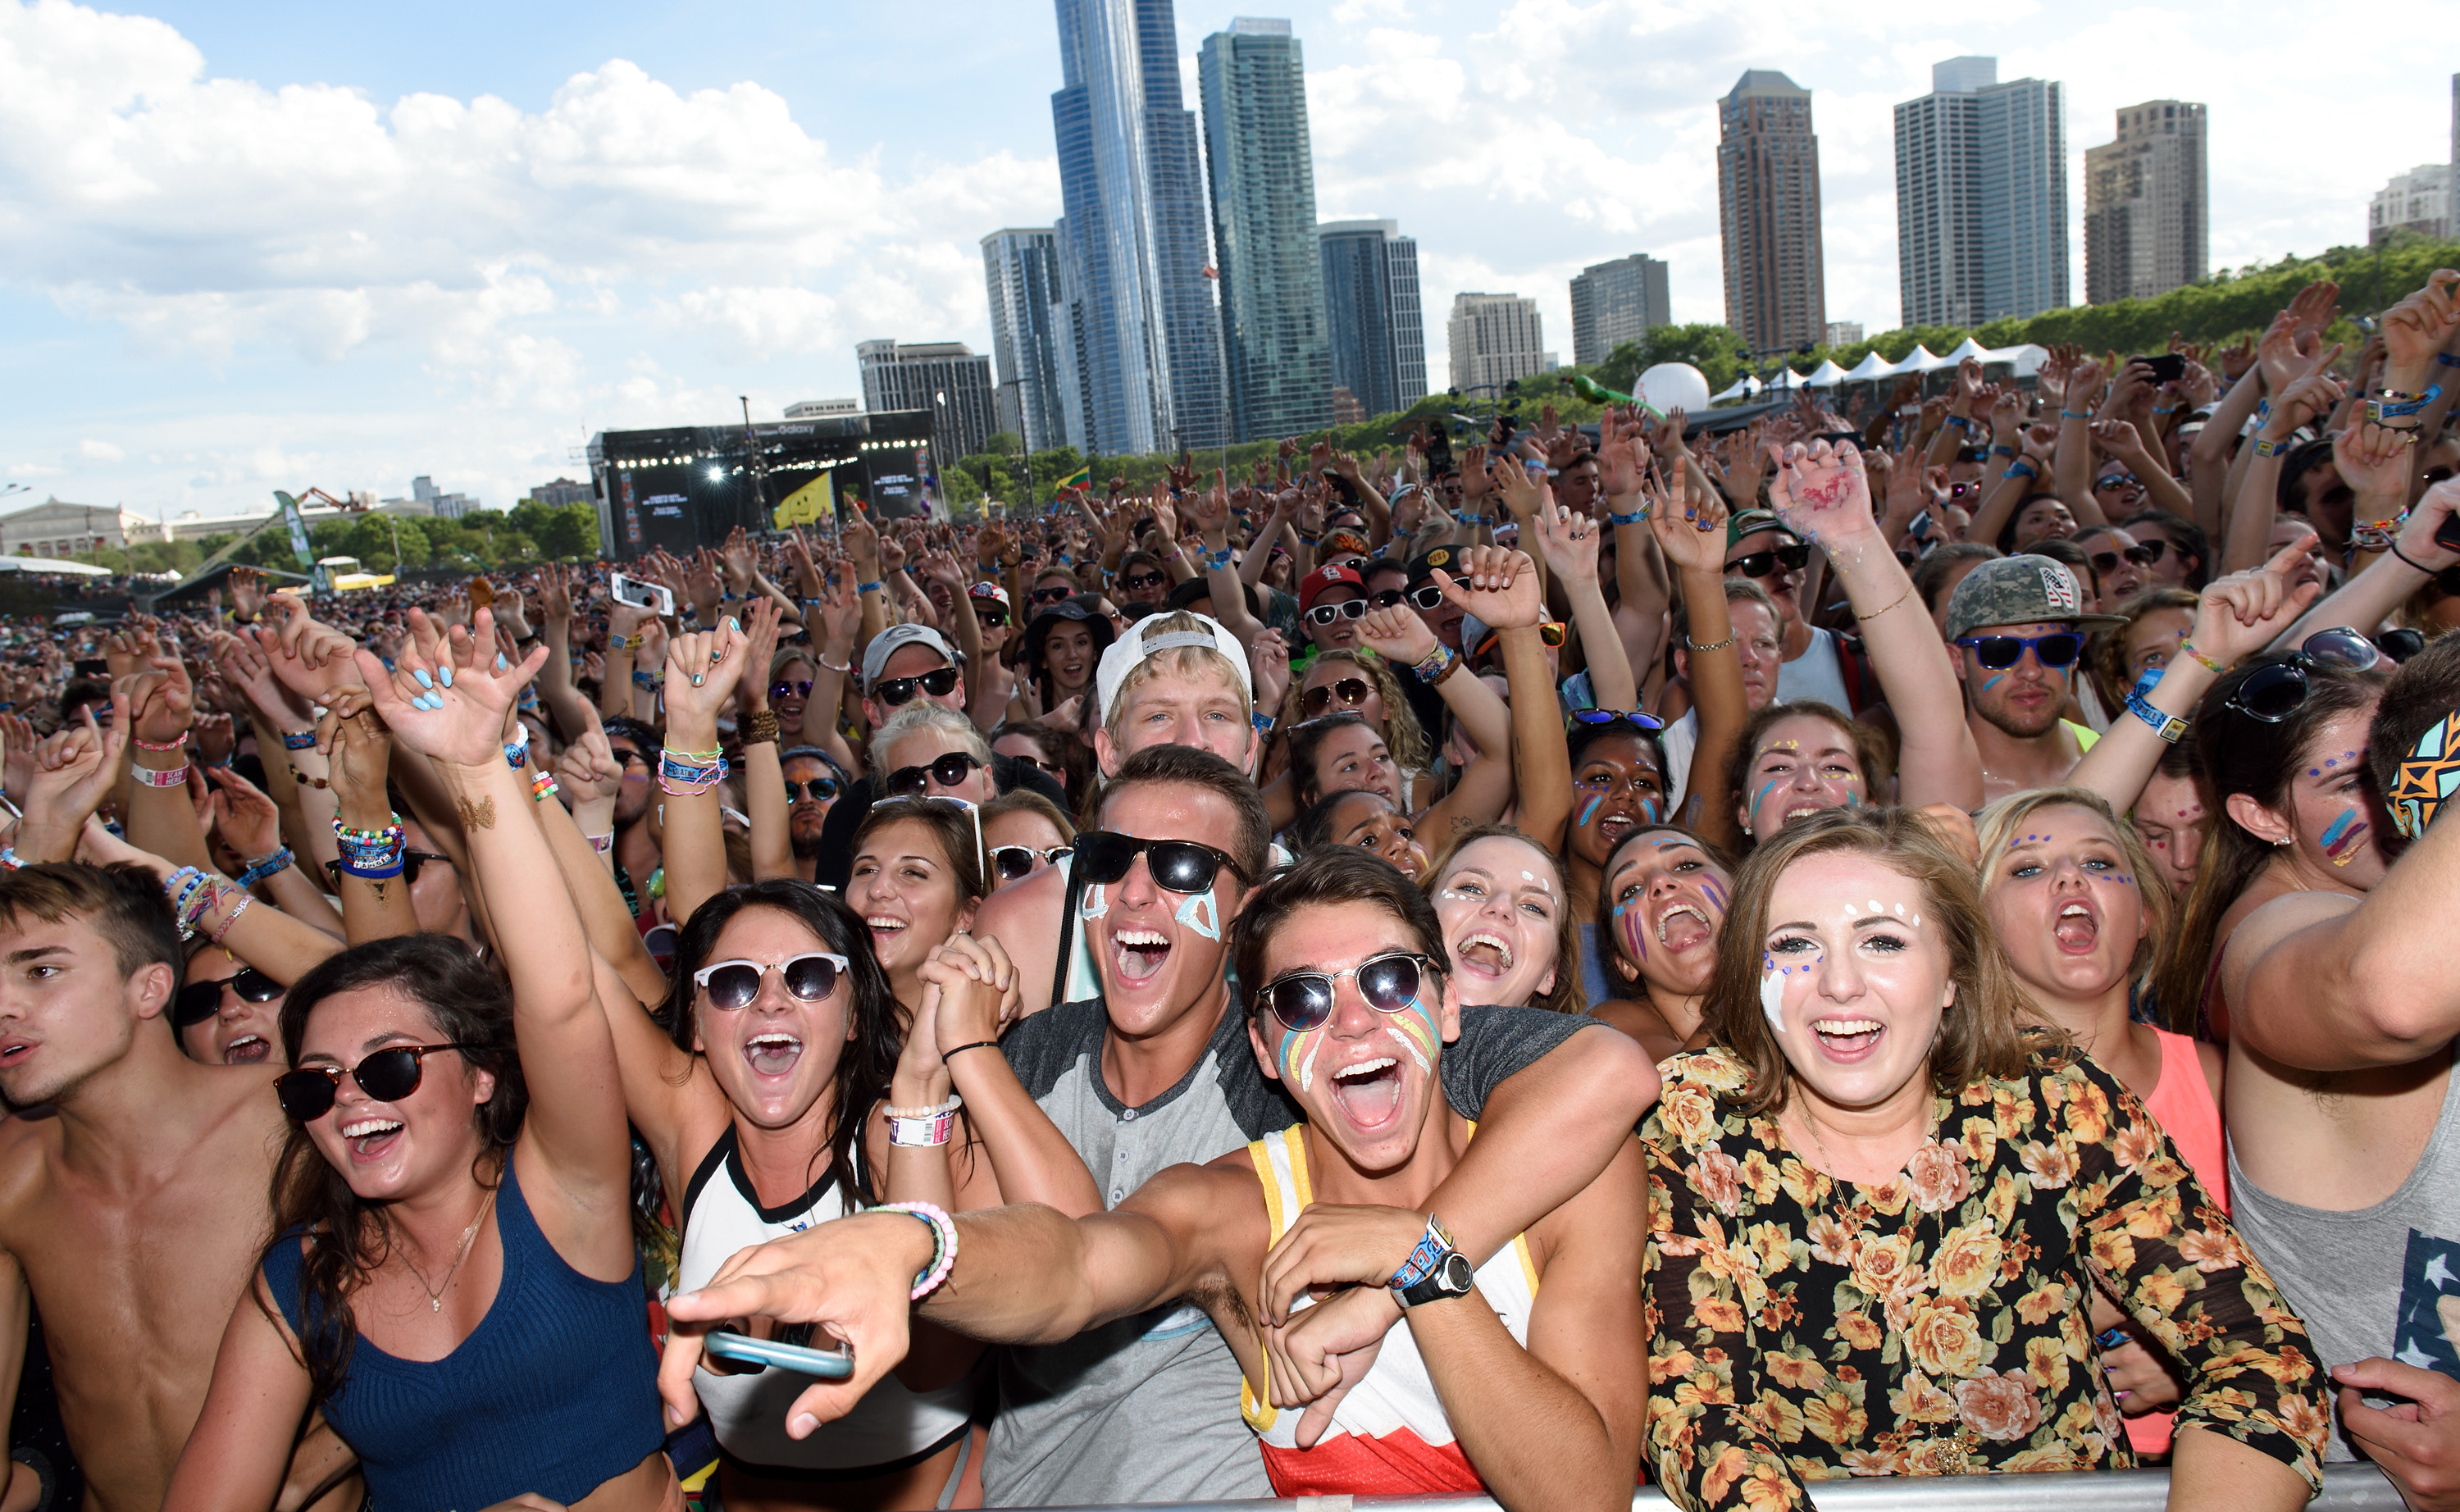 CHICAGO, IL - AUGUST 01: A general view of festival attendees watching Walk the Moon perform during Lollapalooza 2015 at Grant Park on August 1, 2015 in Chicago, United States. (Photo by Daniel Boczarski/Redferns)